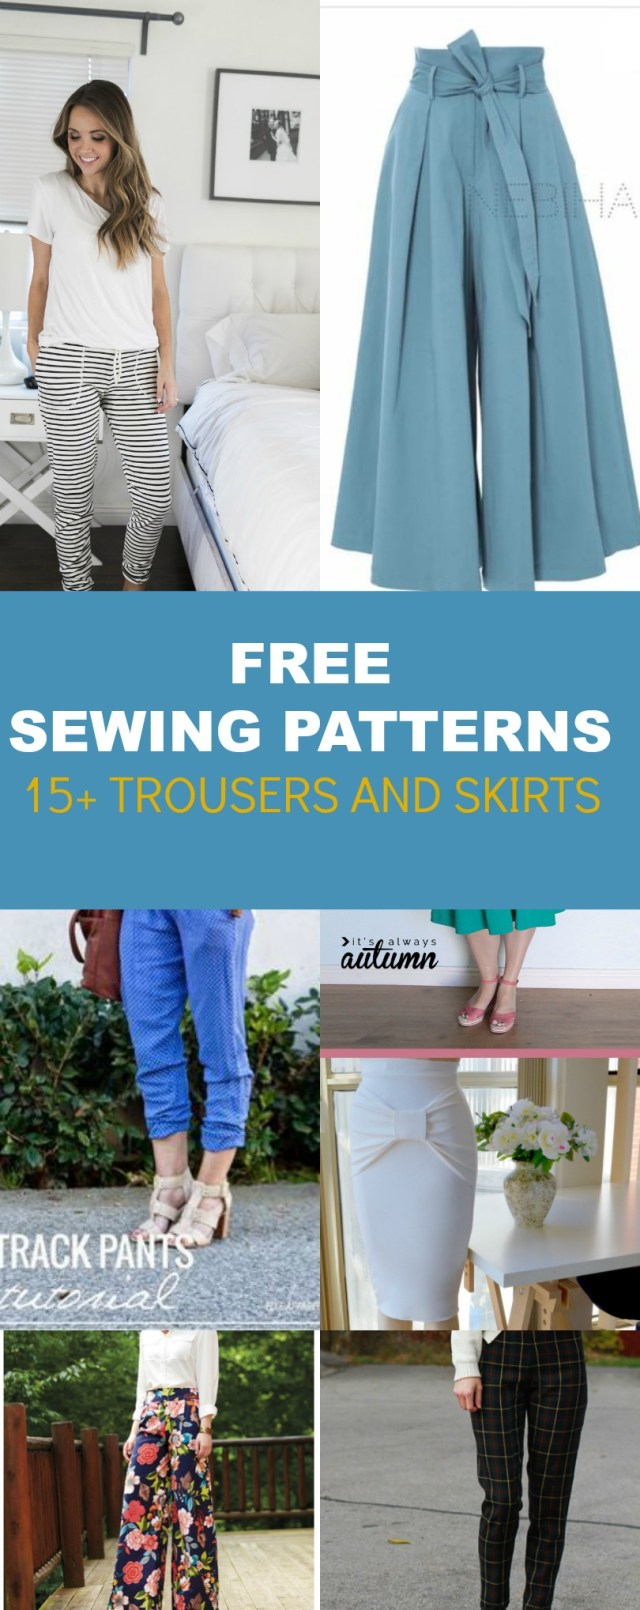 Free Sewing Patterns Free Pattern Alert 15 Pants And Skirts Sewing Tutorials On The